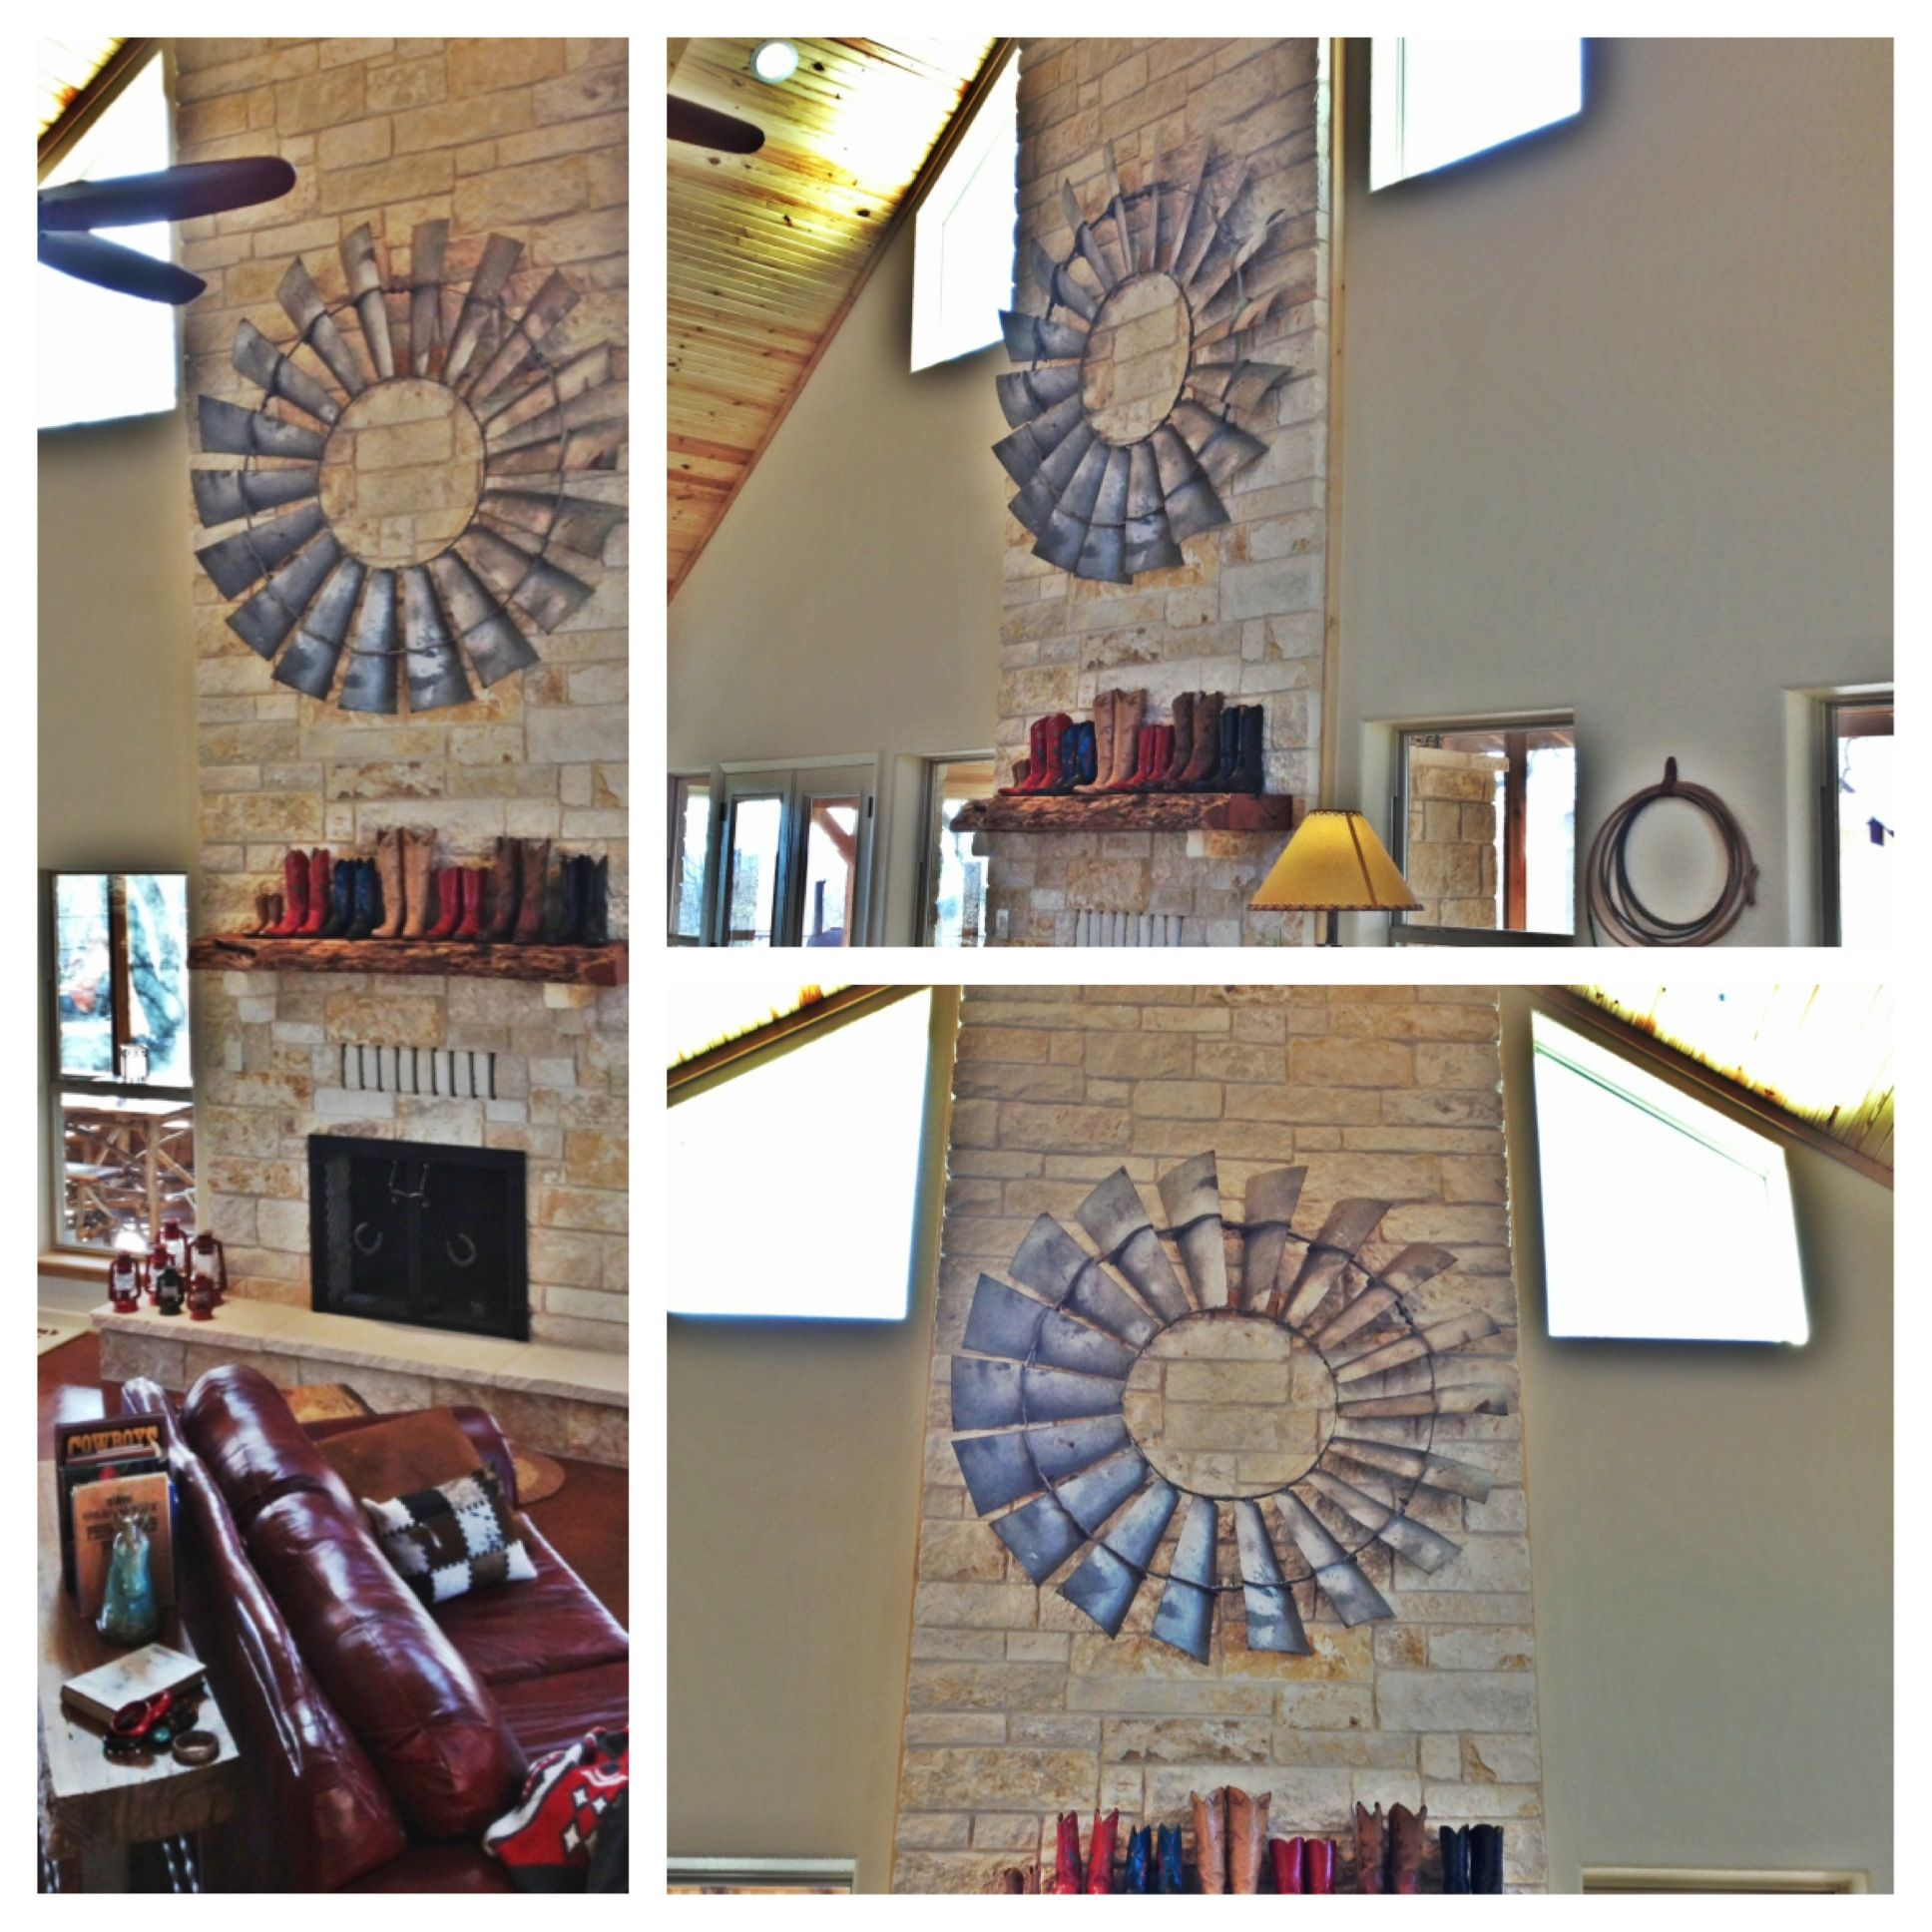 Awesome antique windmill blades as unique rustic decor for the awesome antique windmill blades as unique rustic decor amipublicfo Images